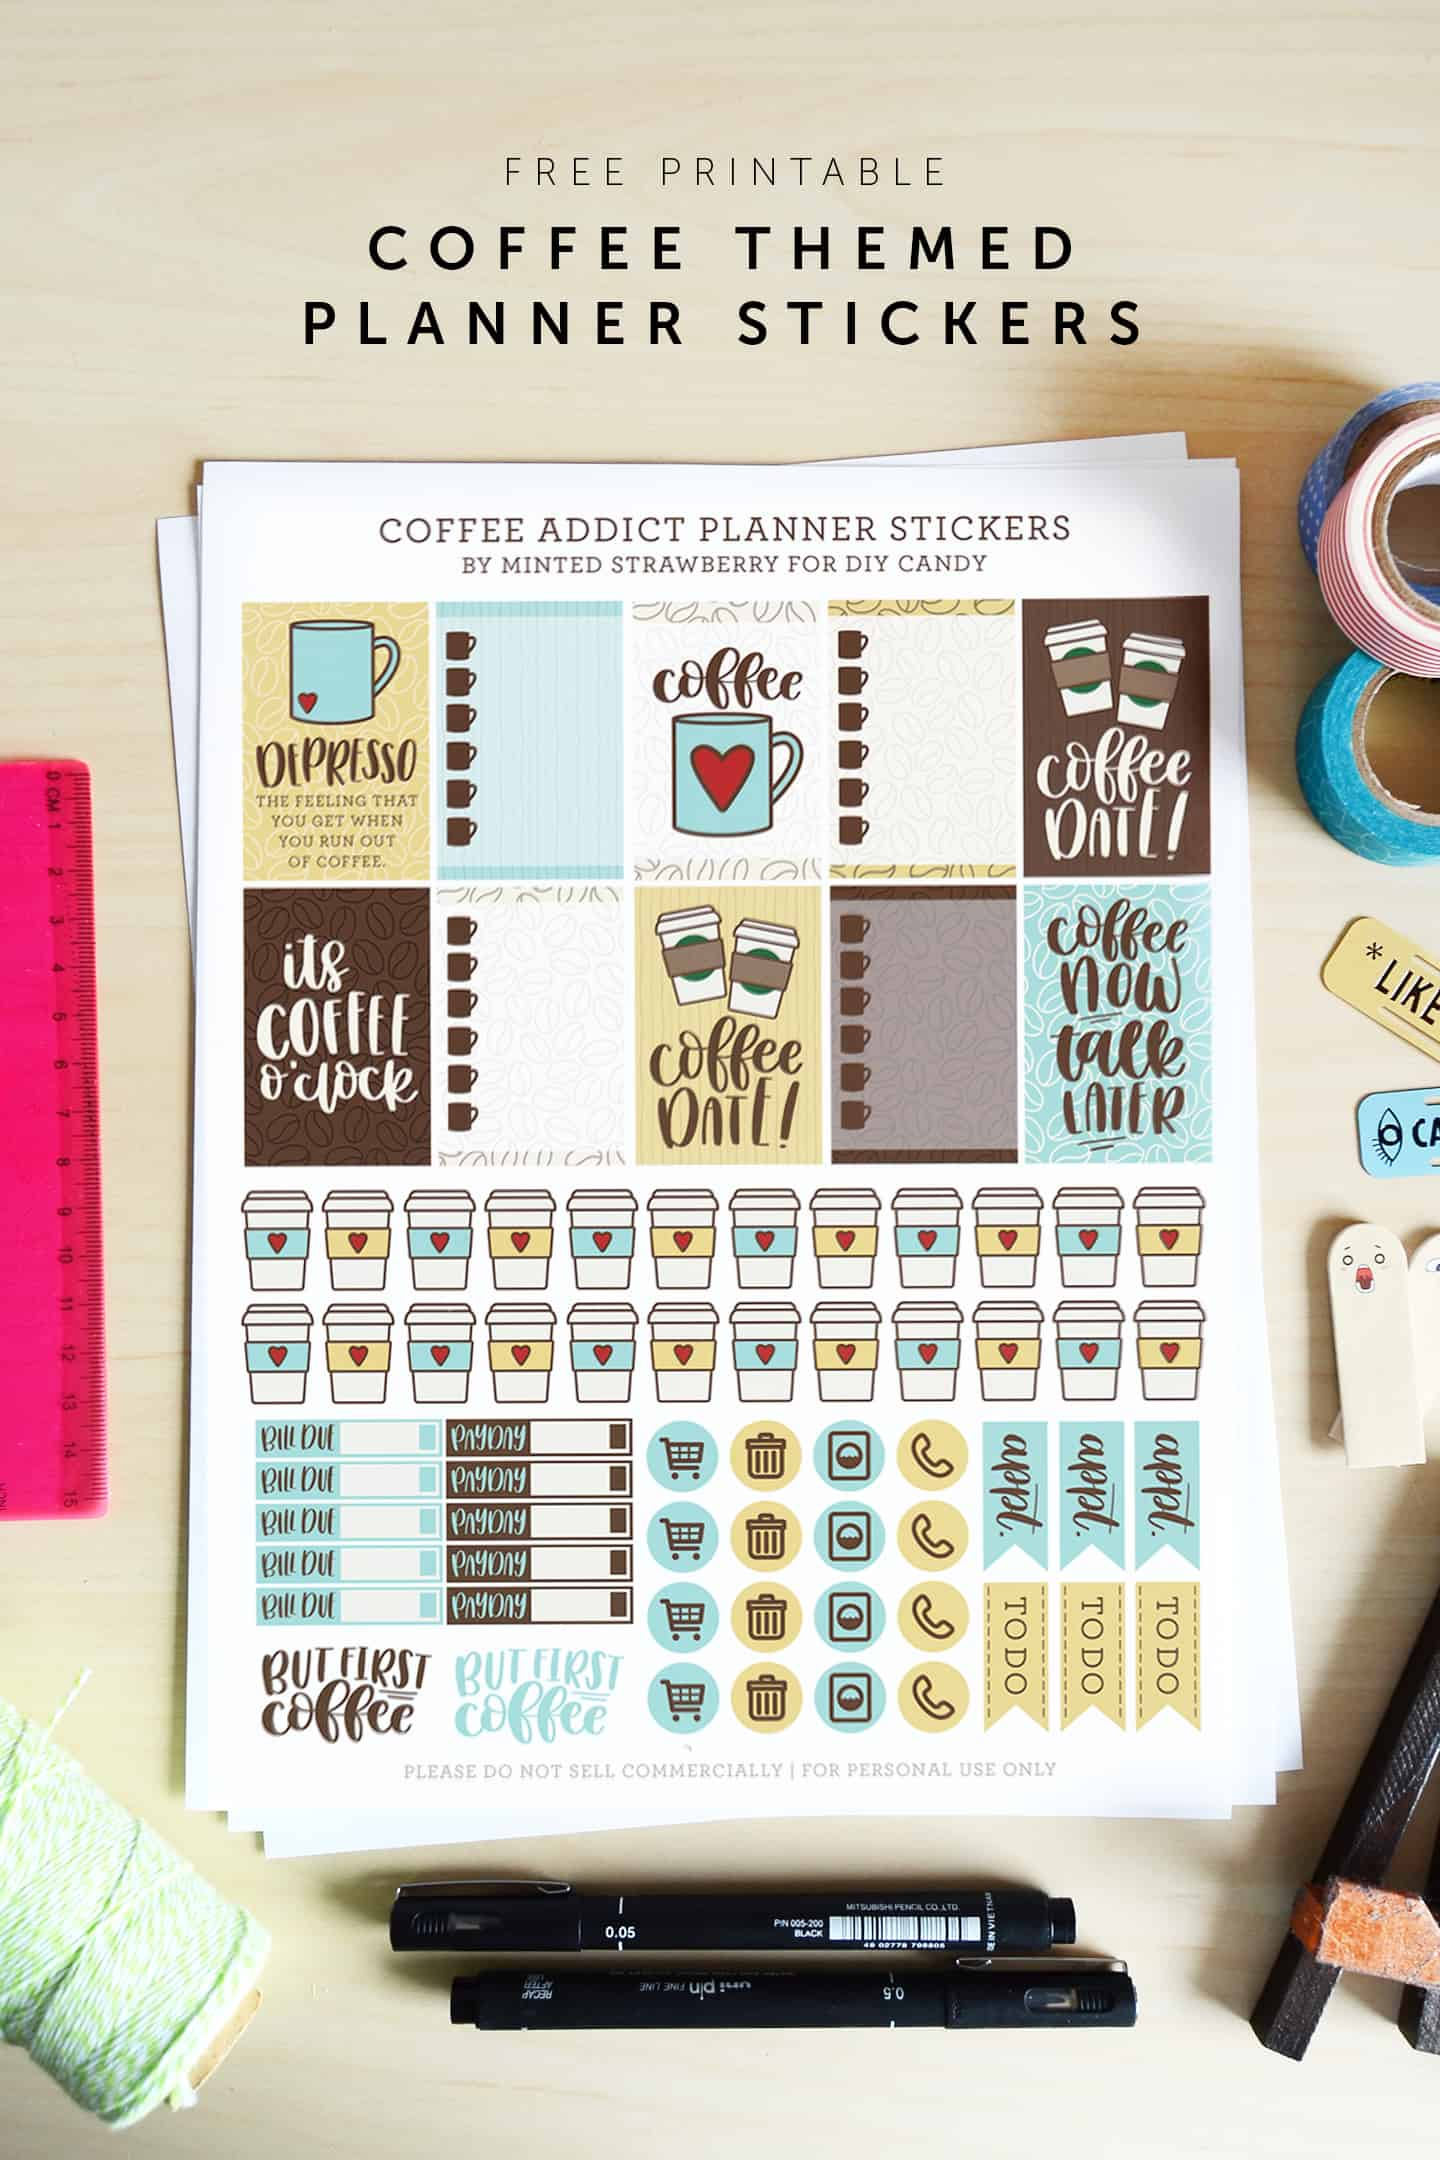 photo relating to Free Printable Stickers named Totally free Printable Espresso Stickers for Your Planner - Do it yourself Sweet